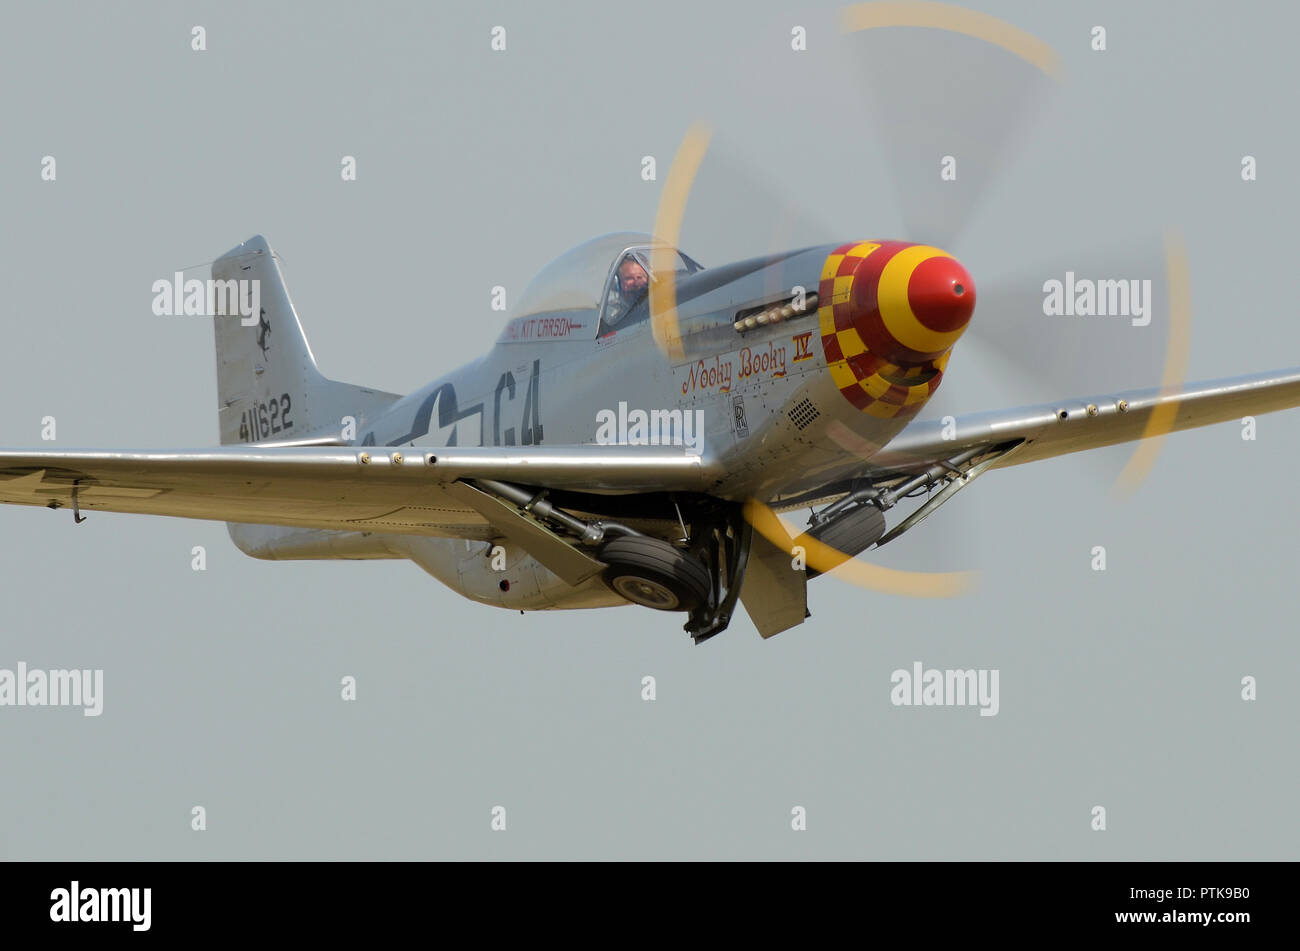 North American P-51 Mustang fighter plane named Nooky Booky IV taking off to display at an airshow Tucking up its undercarriage wheels. Space for copy - Stock Image